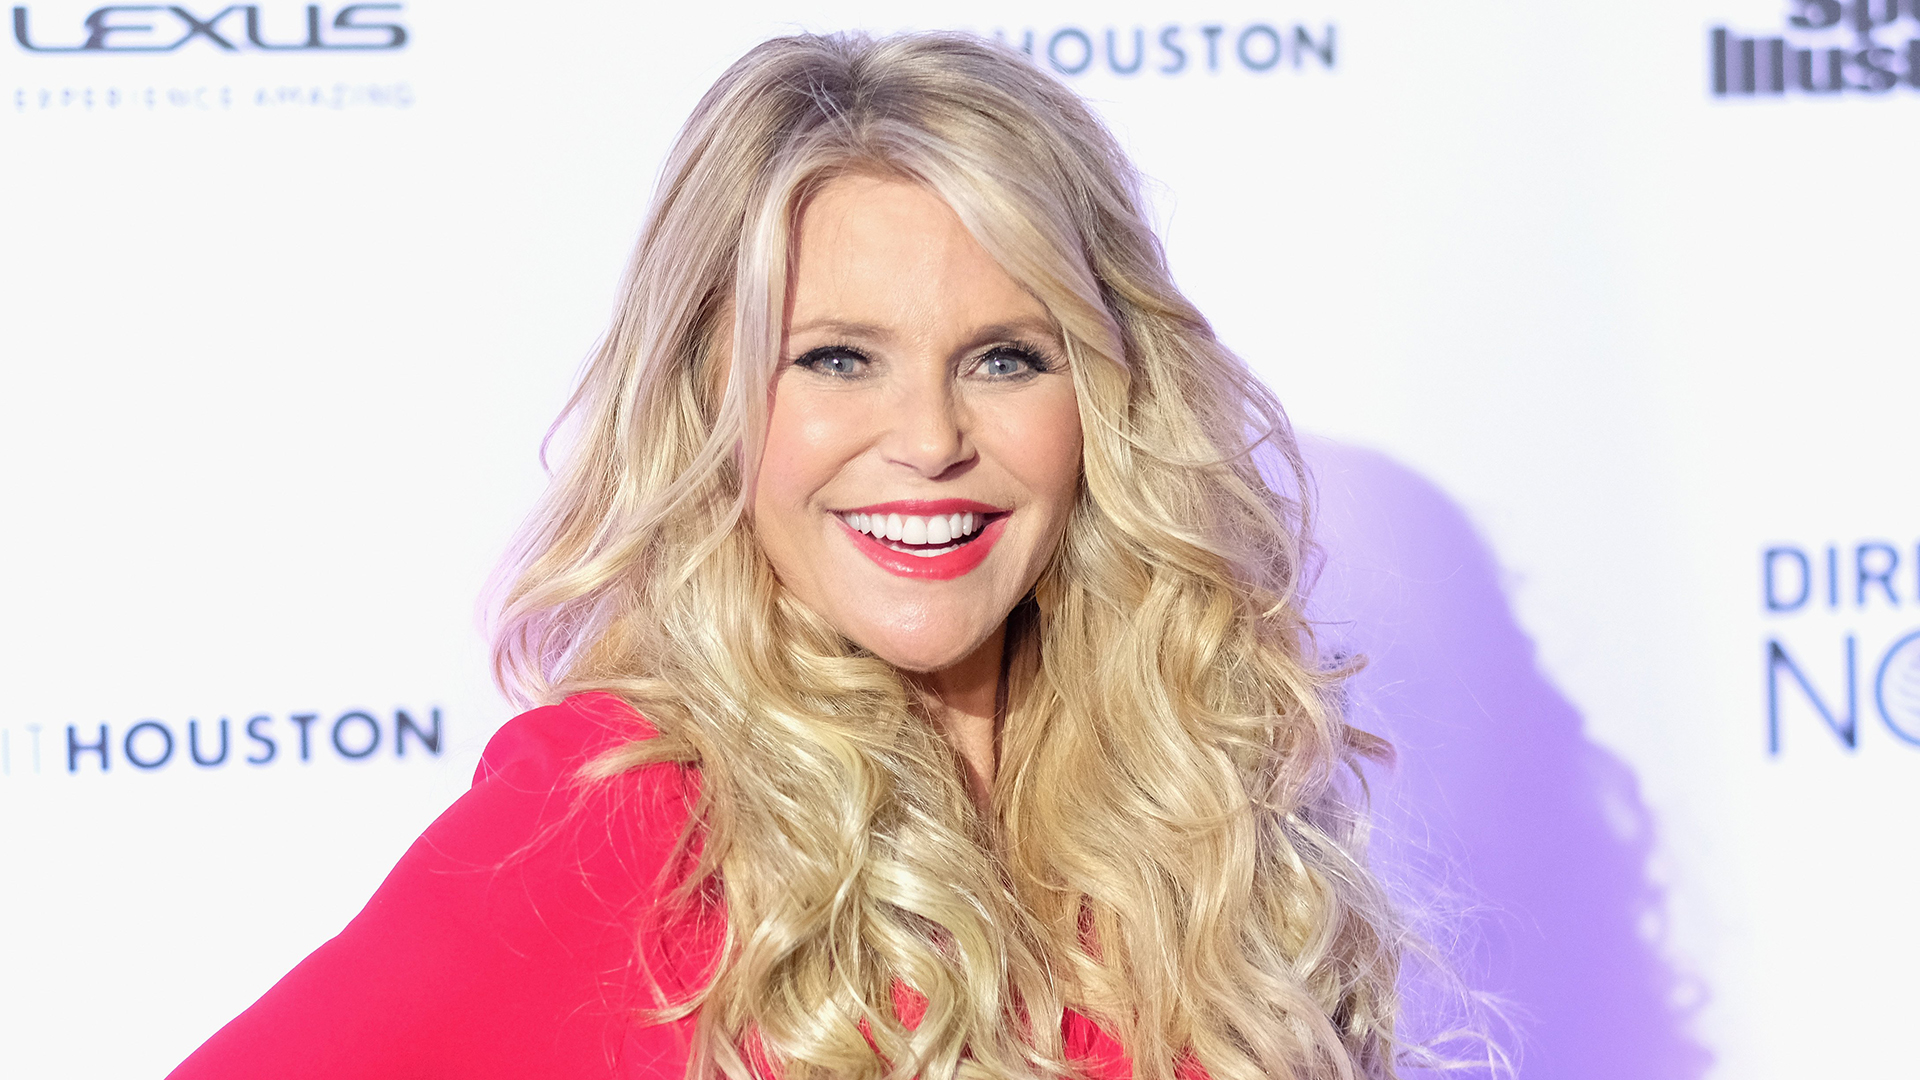 Christie Brinkley 63 Shares Her Top Anti Aging Secrets